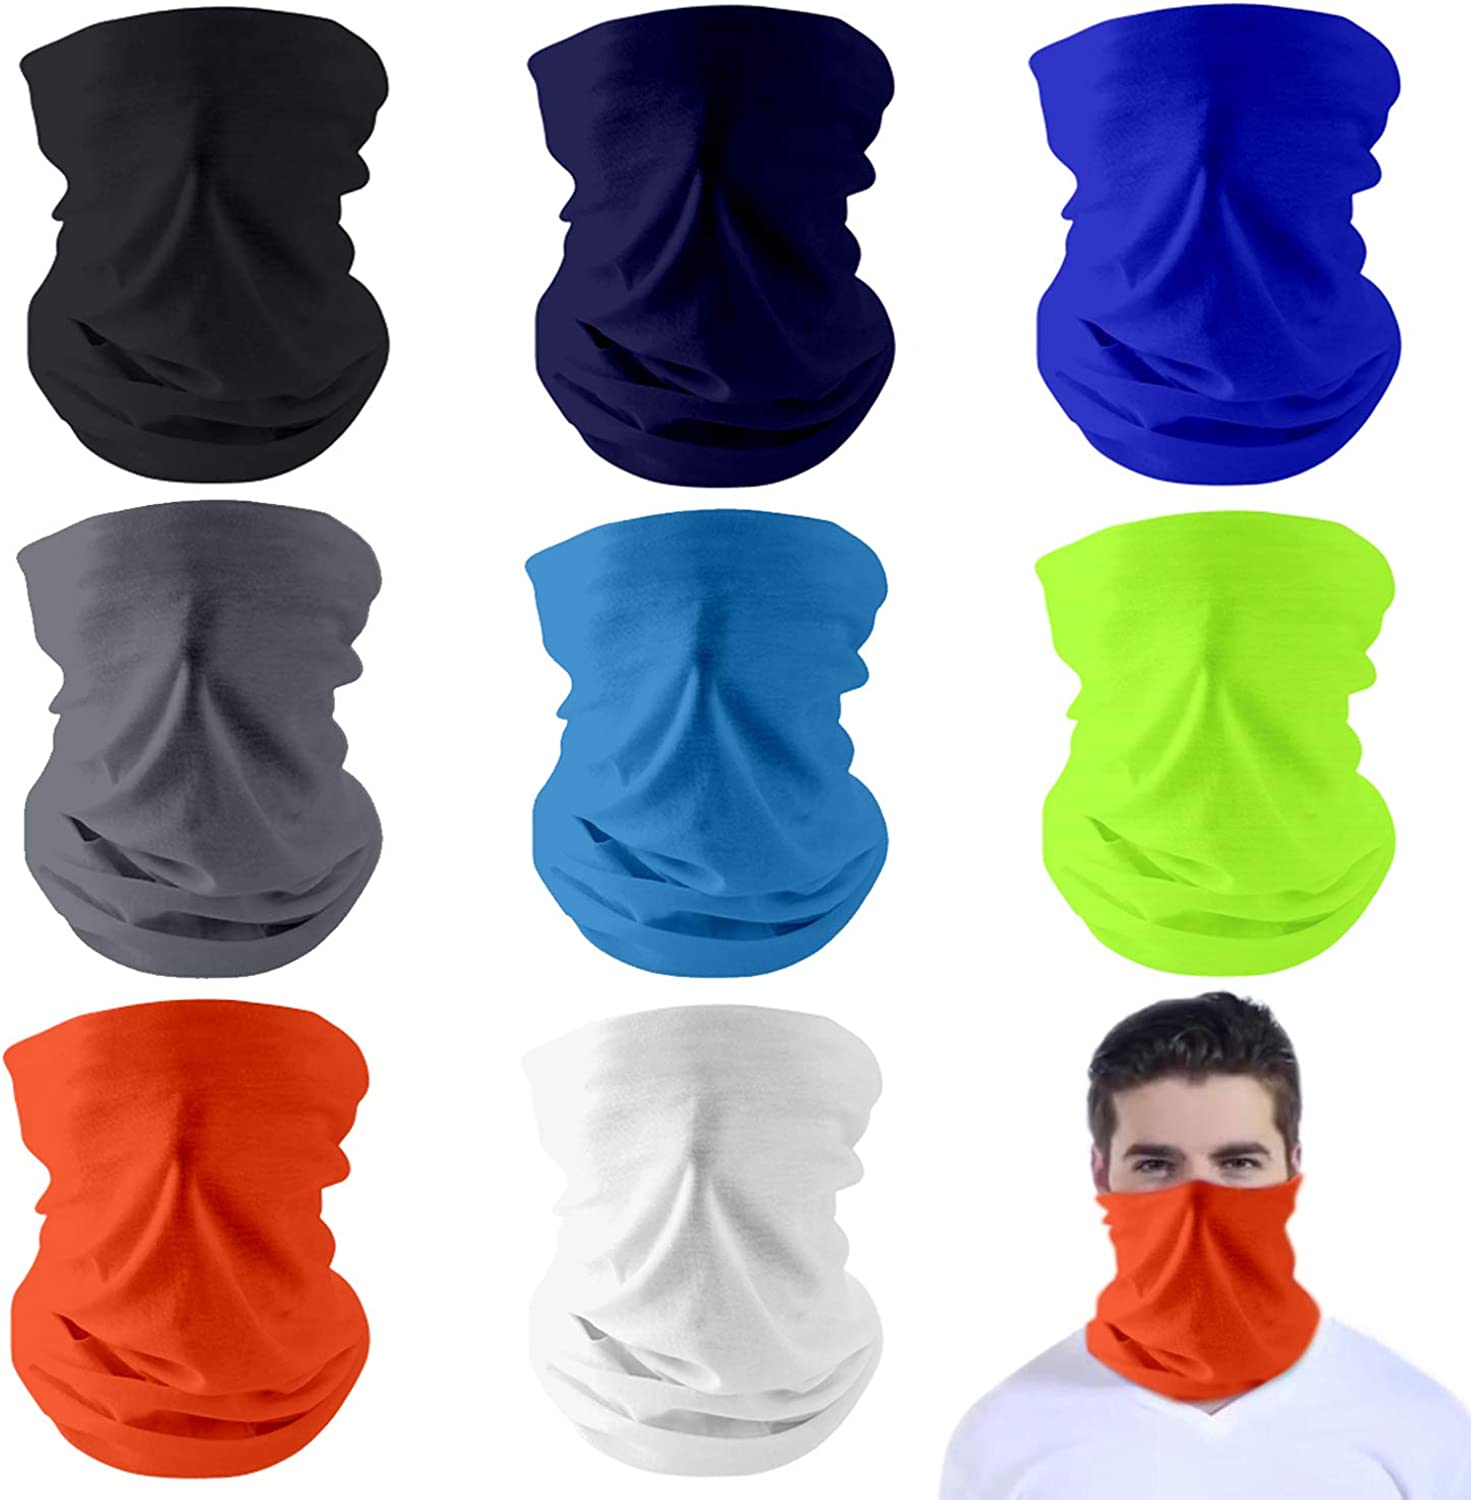 Dapaser 8 Pack Reusable Cooling Neck Gaiter Face Cover Balaclava UV Protection Breathable Bandanas Scarf for Women Men